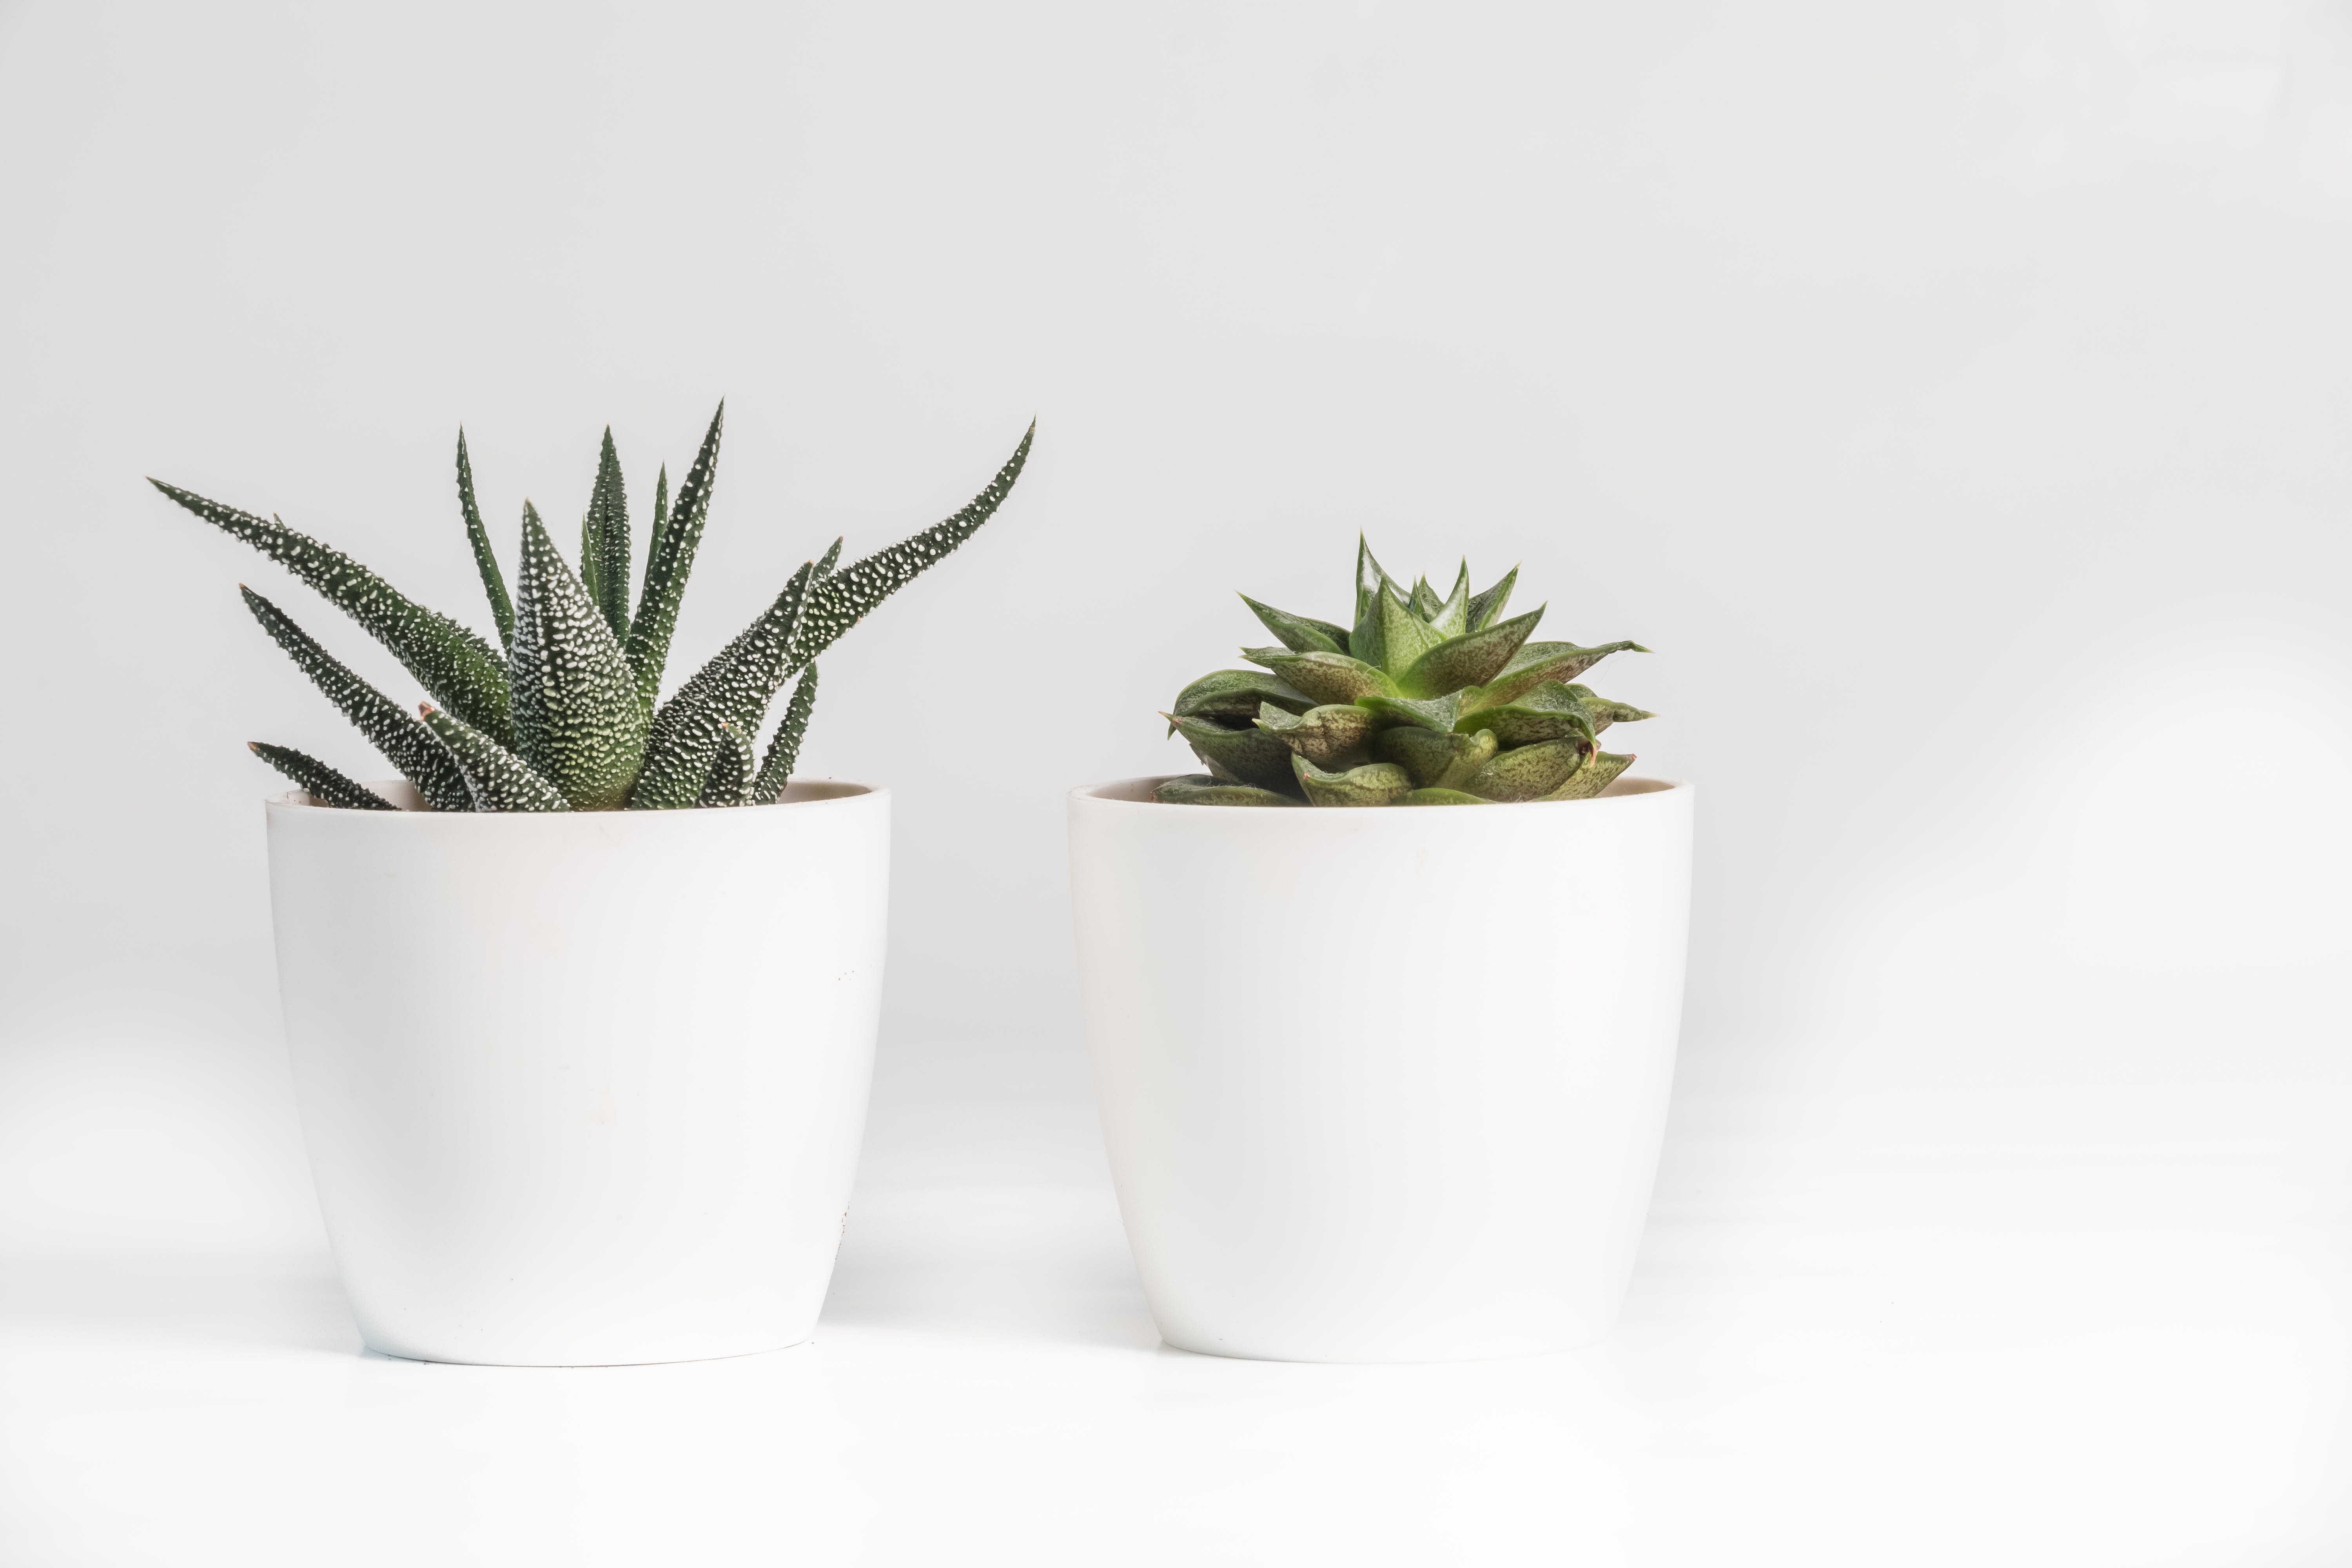 Aloe Vera and Succulent Plant in White Ceramic Pot